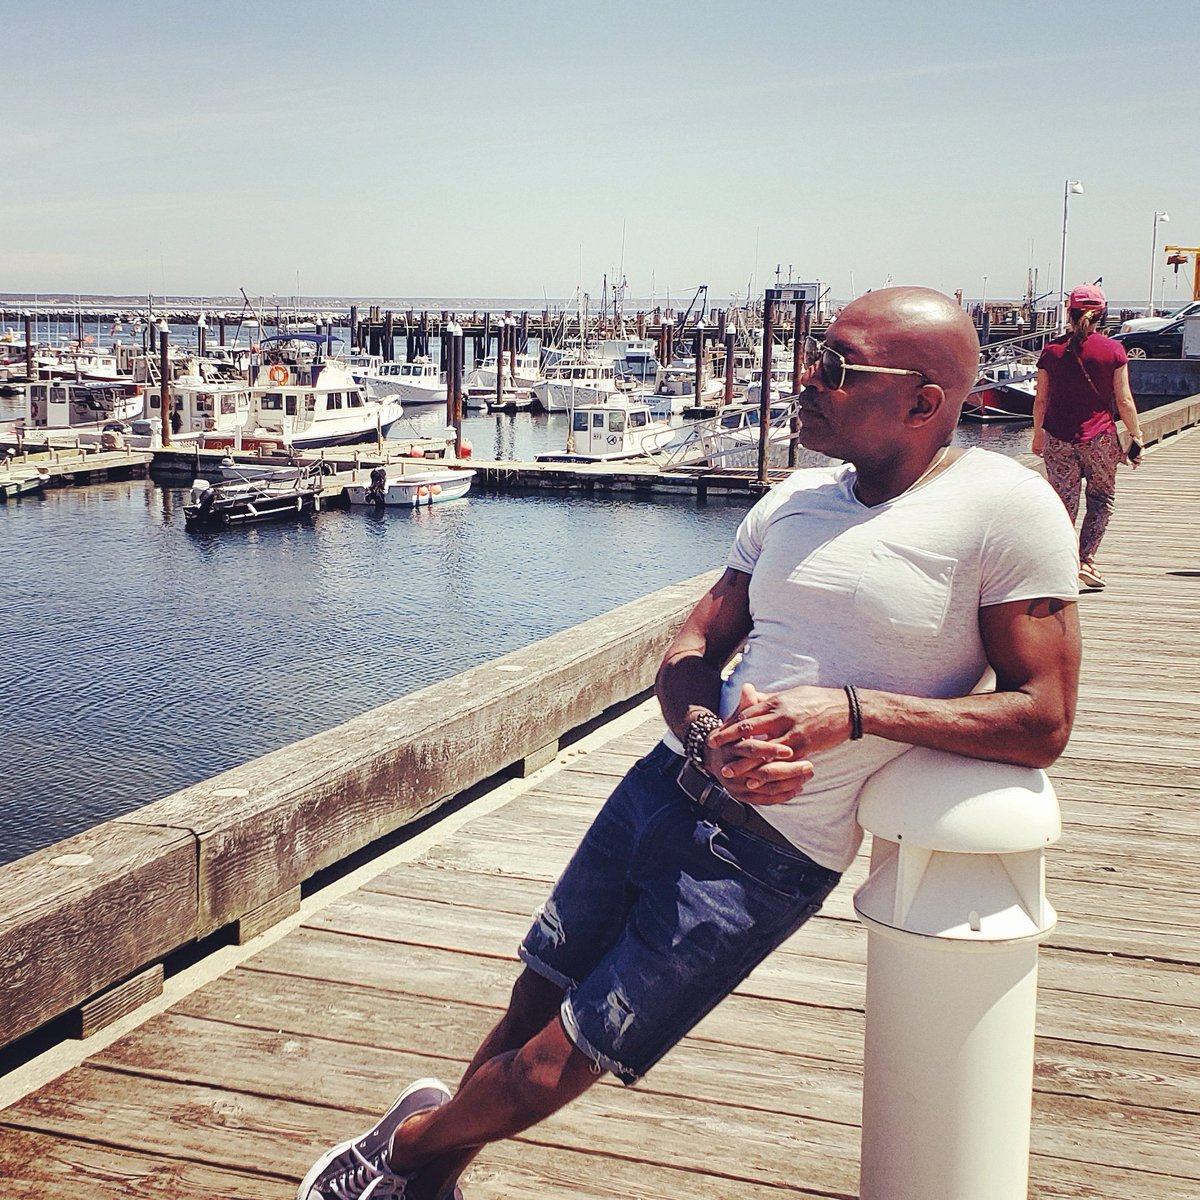 Be Happy. Be Positive. Be Well. ❤🙏🏽 #memorialdayweekend #ptown #boyatthebeach #yesihavesunblockonmybaldhead https://t.co/SiqdcycP6W